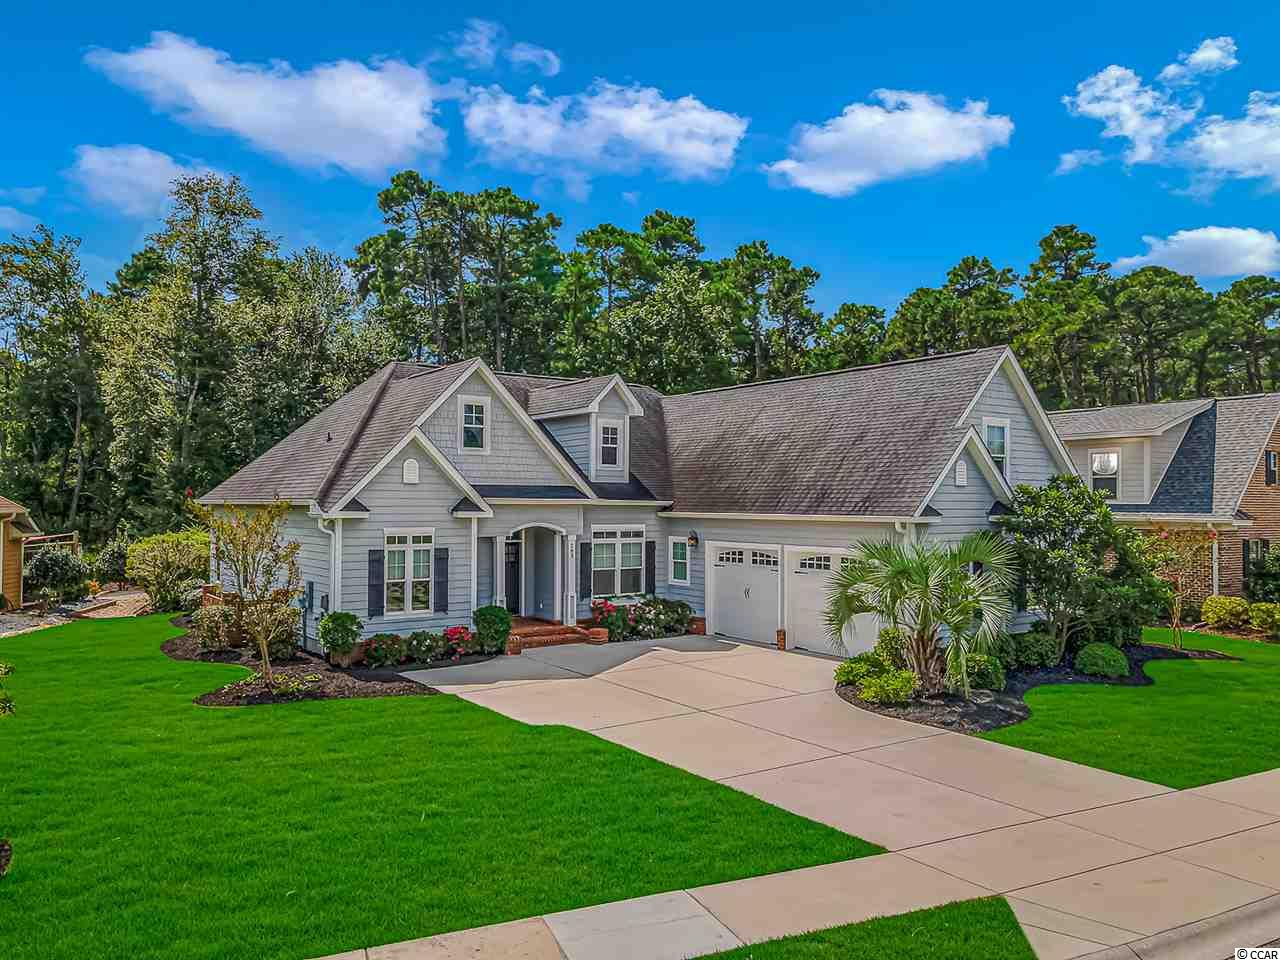 We welcome you to see this 4-bedroom, 3 full bath Low Country home in the highly sought-after community of Plantation Lakes. With great curb appeal, a split bedroom open floor plan and over 2400 feet of living space, there is nothing lacking in this meticulously cared for, fully upgraded custom home.  Entering the formal foyer, you will notice new luxury plank flooring throughout, 10 ft ceilings and plenty of windows providing natural light in the family room, dining room and kitchen. The family room is large with a built-in fireplace and access to a large screened-in porch. The dining area features picture-frame wainscoting and chair railing. The kitchen boasts stainless steel appliances, granite counters, custom off-white staggered all wood cabinets, soft close drawers and, of course, what is a kitchen without a generous work island? There is even a built-in desk for paying bills or completing homework assignments.  The large master bedroom offers a tray ceiling, hardwood floors and his and her walk-in closets with custom built shelving. The master bathroom has a cathedral ceiling, double sink vanity, a generous linen closet, a large tiled shower with bench seating and a beautiful cast iron, claw foot, tub for those peaceful and relaxing candlelit evenings sipping a glass of wine.  This home is truly a custom home with extra details everywhere such as extensive custom moldings, pocket doors and upgrade finishes. There is even new carpeting in the guest bedroom as well as the upstairs bonus/4th bedroom and energy saving skylights in the family room.  Other features include a remote controlled irrigation system, gutters with downspouts, 2 HVAC systems, a solar powered hot water system with 2 tanks, solar panels that significantly reduce energy costs and a backup generator. Privacy is assured as the home backs up to a conservation area.  If you are looking for a community to call home that is more than just a neighborhood, Plantation Lakes fits the bill. Living here is a LIFESTYLE, as the community has a club house for social activities with a gym; 2 large swimming pools, a kiddie pool and playground; a day dock; lighted tennis and basketball courts; sidewalks and, of course, those pristine navigable lakes that have 15 miles of shoreline.   Plantation Lakes is in Carolina Forest close to shopping, restaurants, award winning schools and medical care. Add convenience to gorgeous golf courses, entertainment, the airport and, of course, our most beautiful natural resource… the beach, and you can see why Plantation Lakes is one of the most desirable communities on the Grand Strand.  Don't forget to click on Virtual Tour for an online showing of this exciting property.